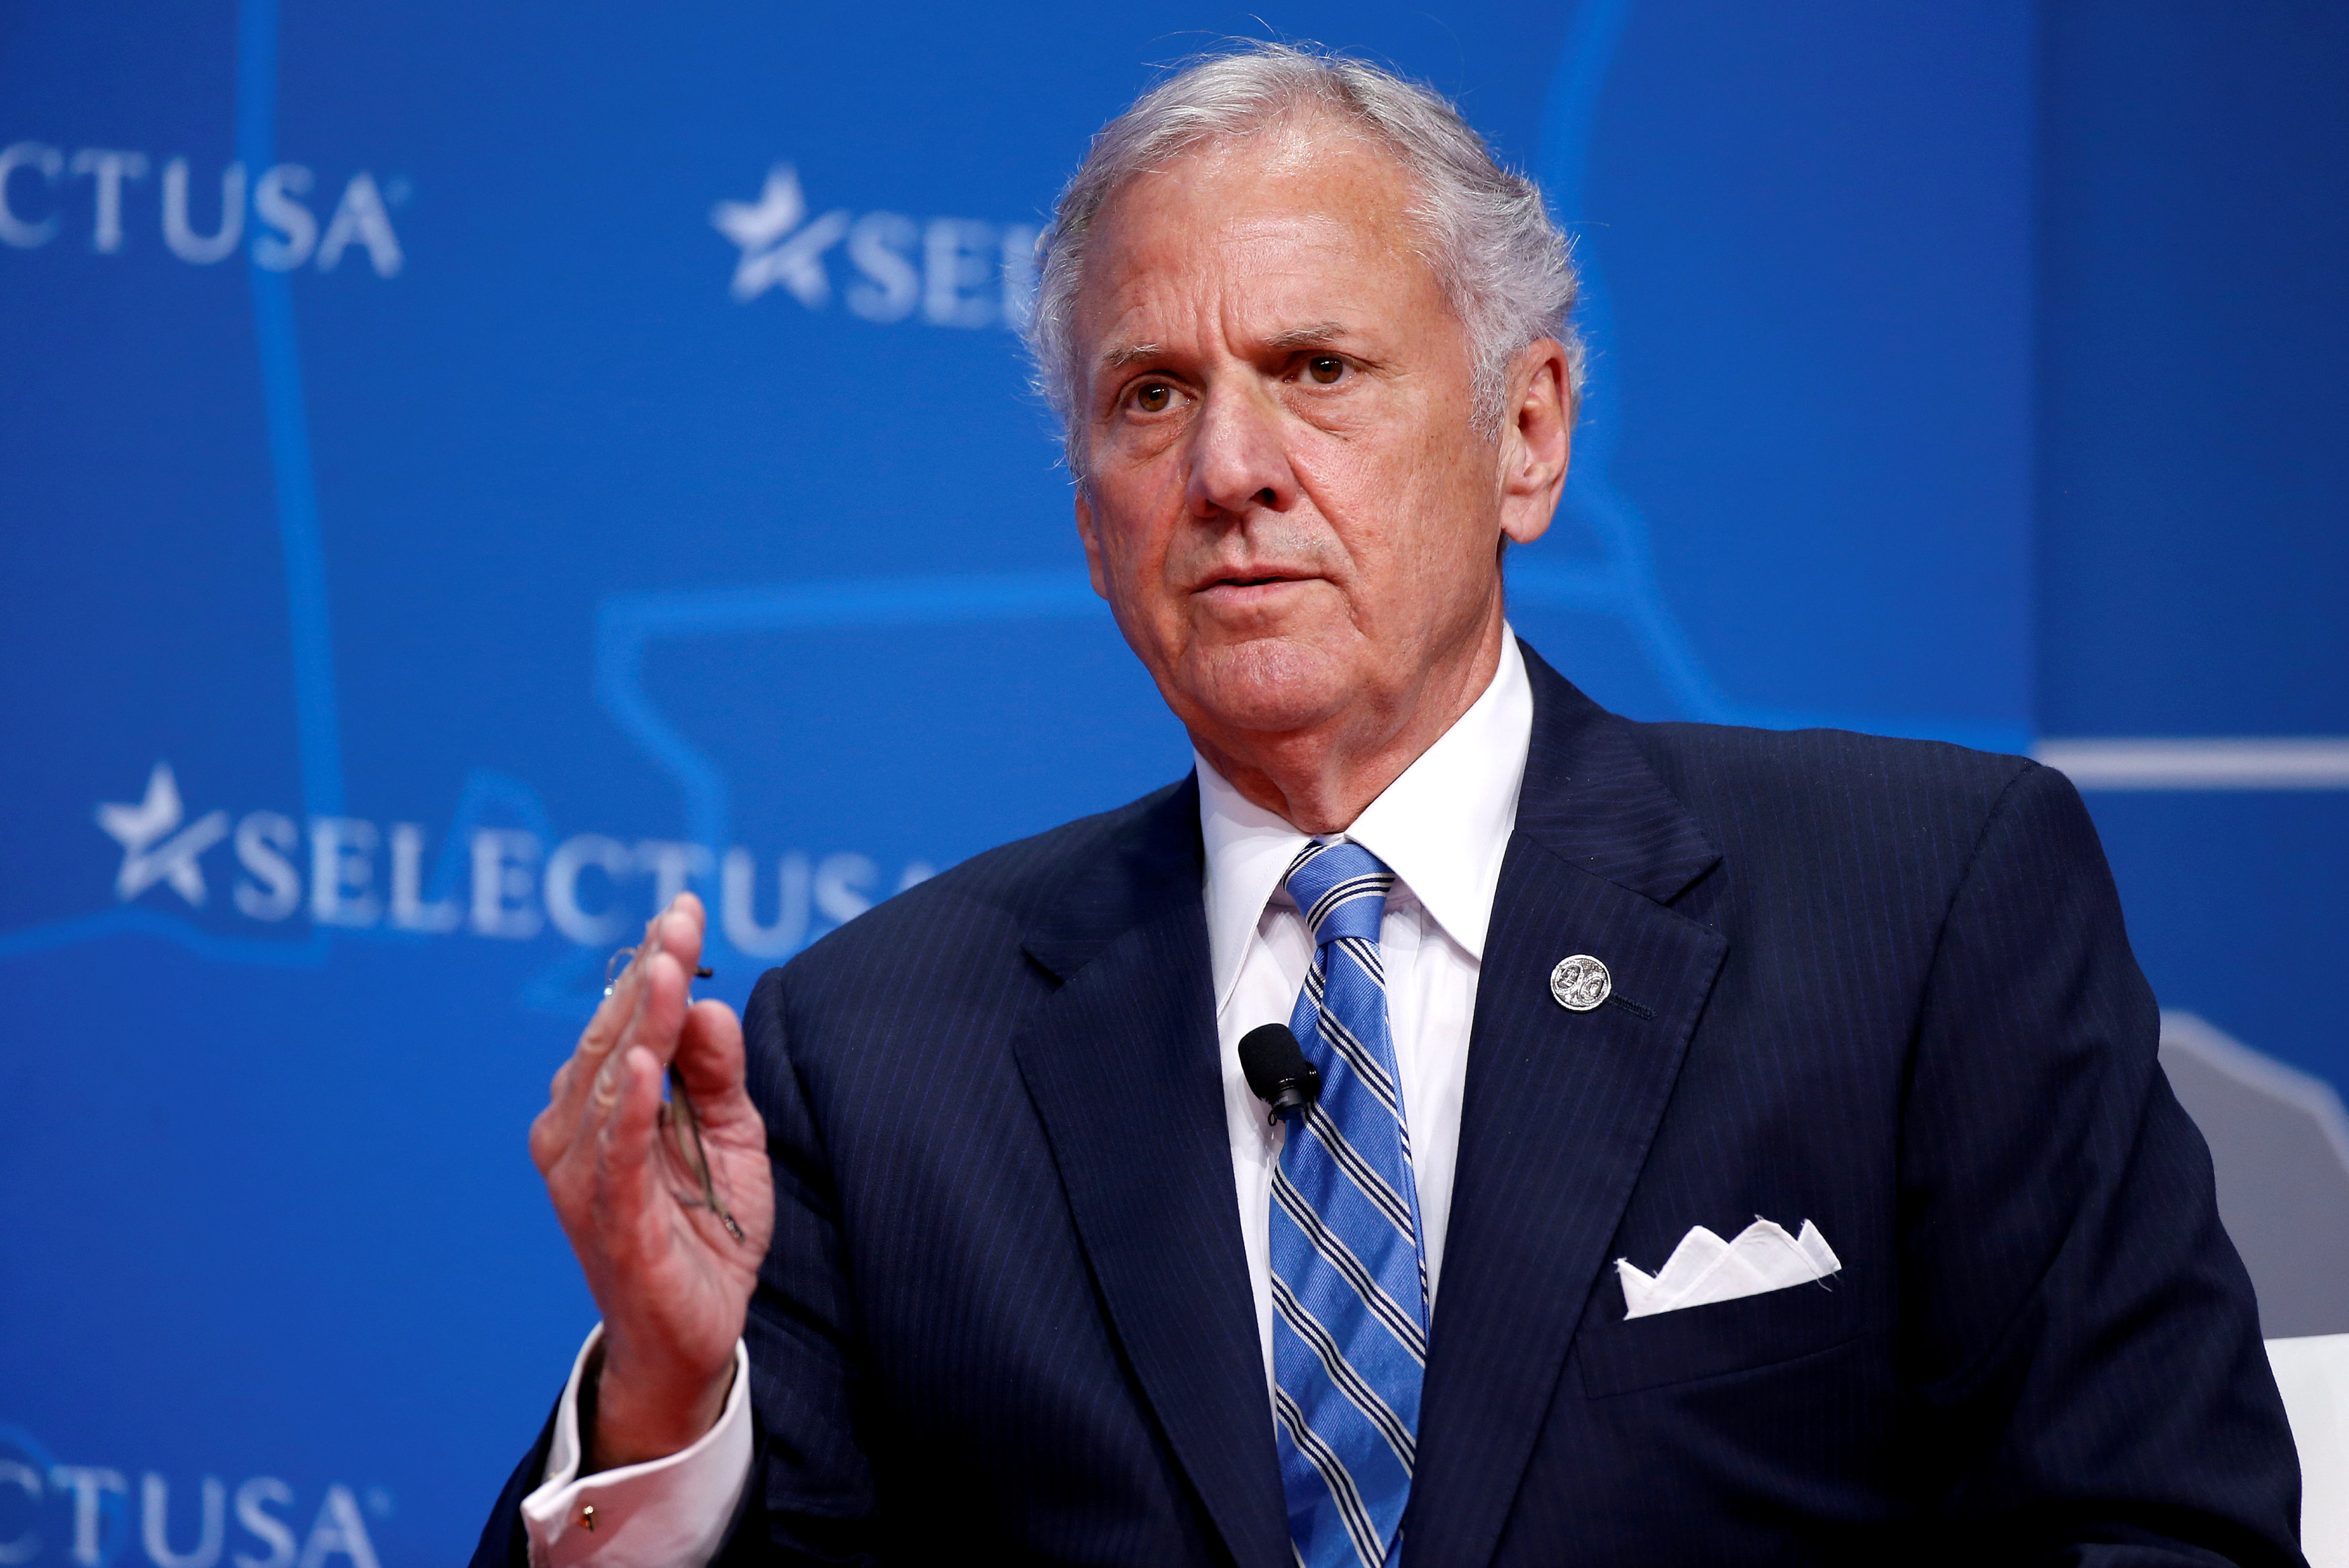 FILE PHOTO: Governor of South Carolina Henry McMaster speaks at 2017 SelectUSA Investment Summit in Oxon Hill, Maryland, U.S., June 19, 2017. REUTERS/Joshua Roberts/File Photo